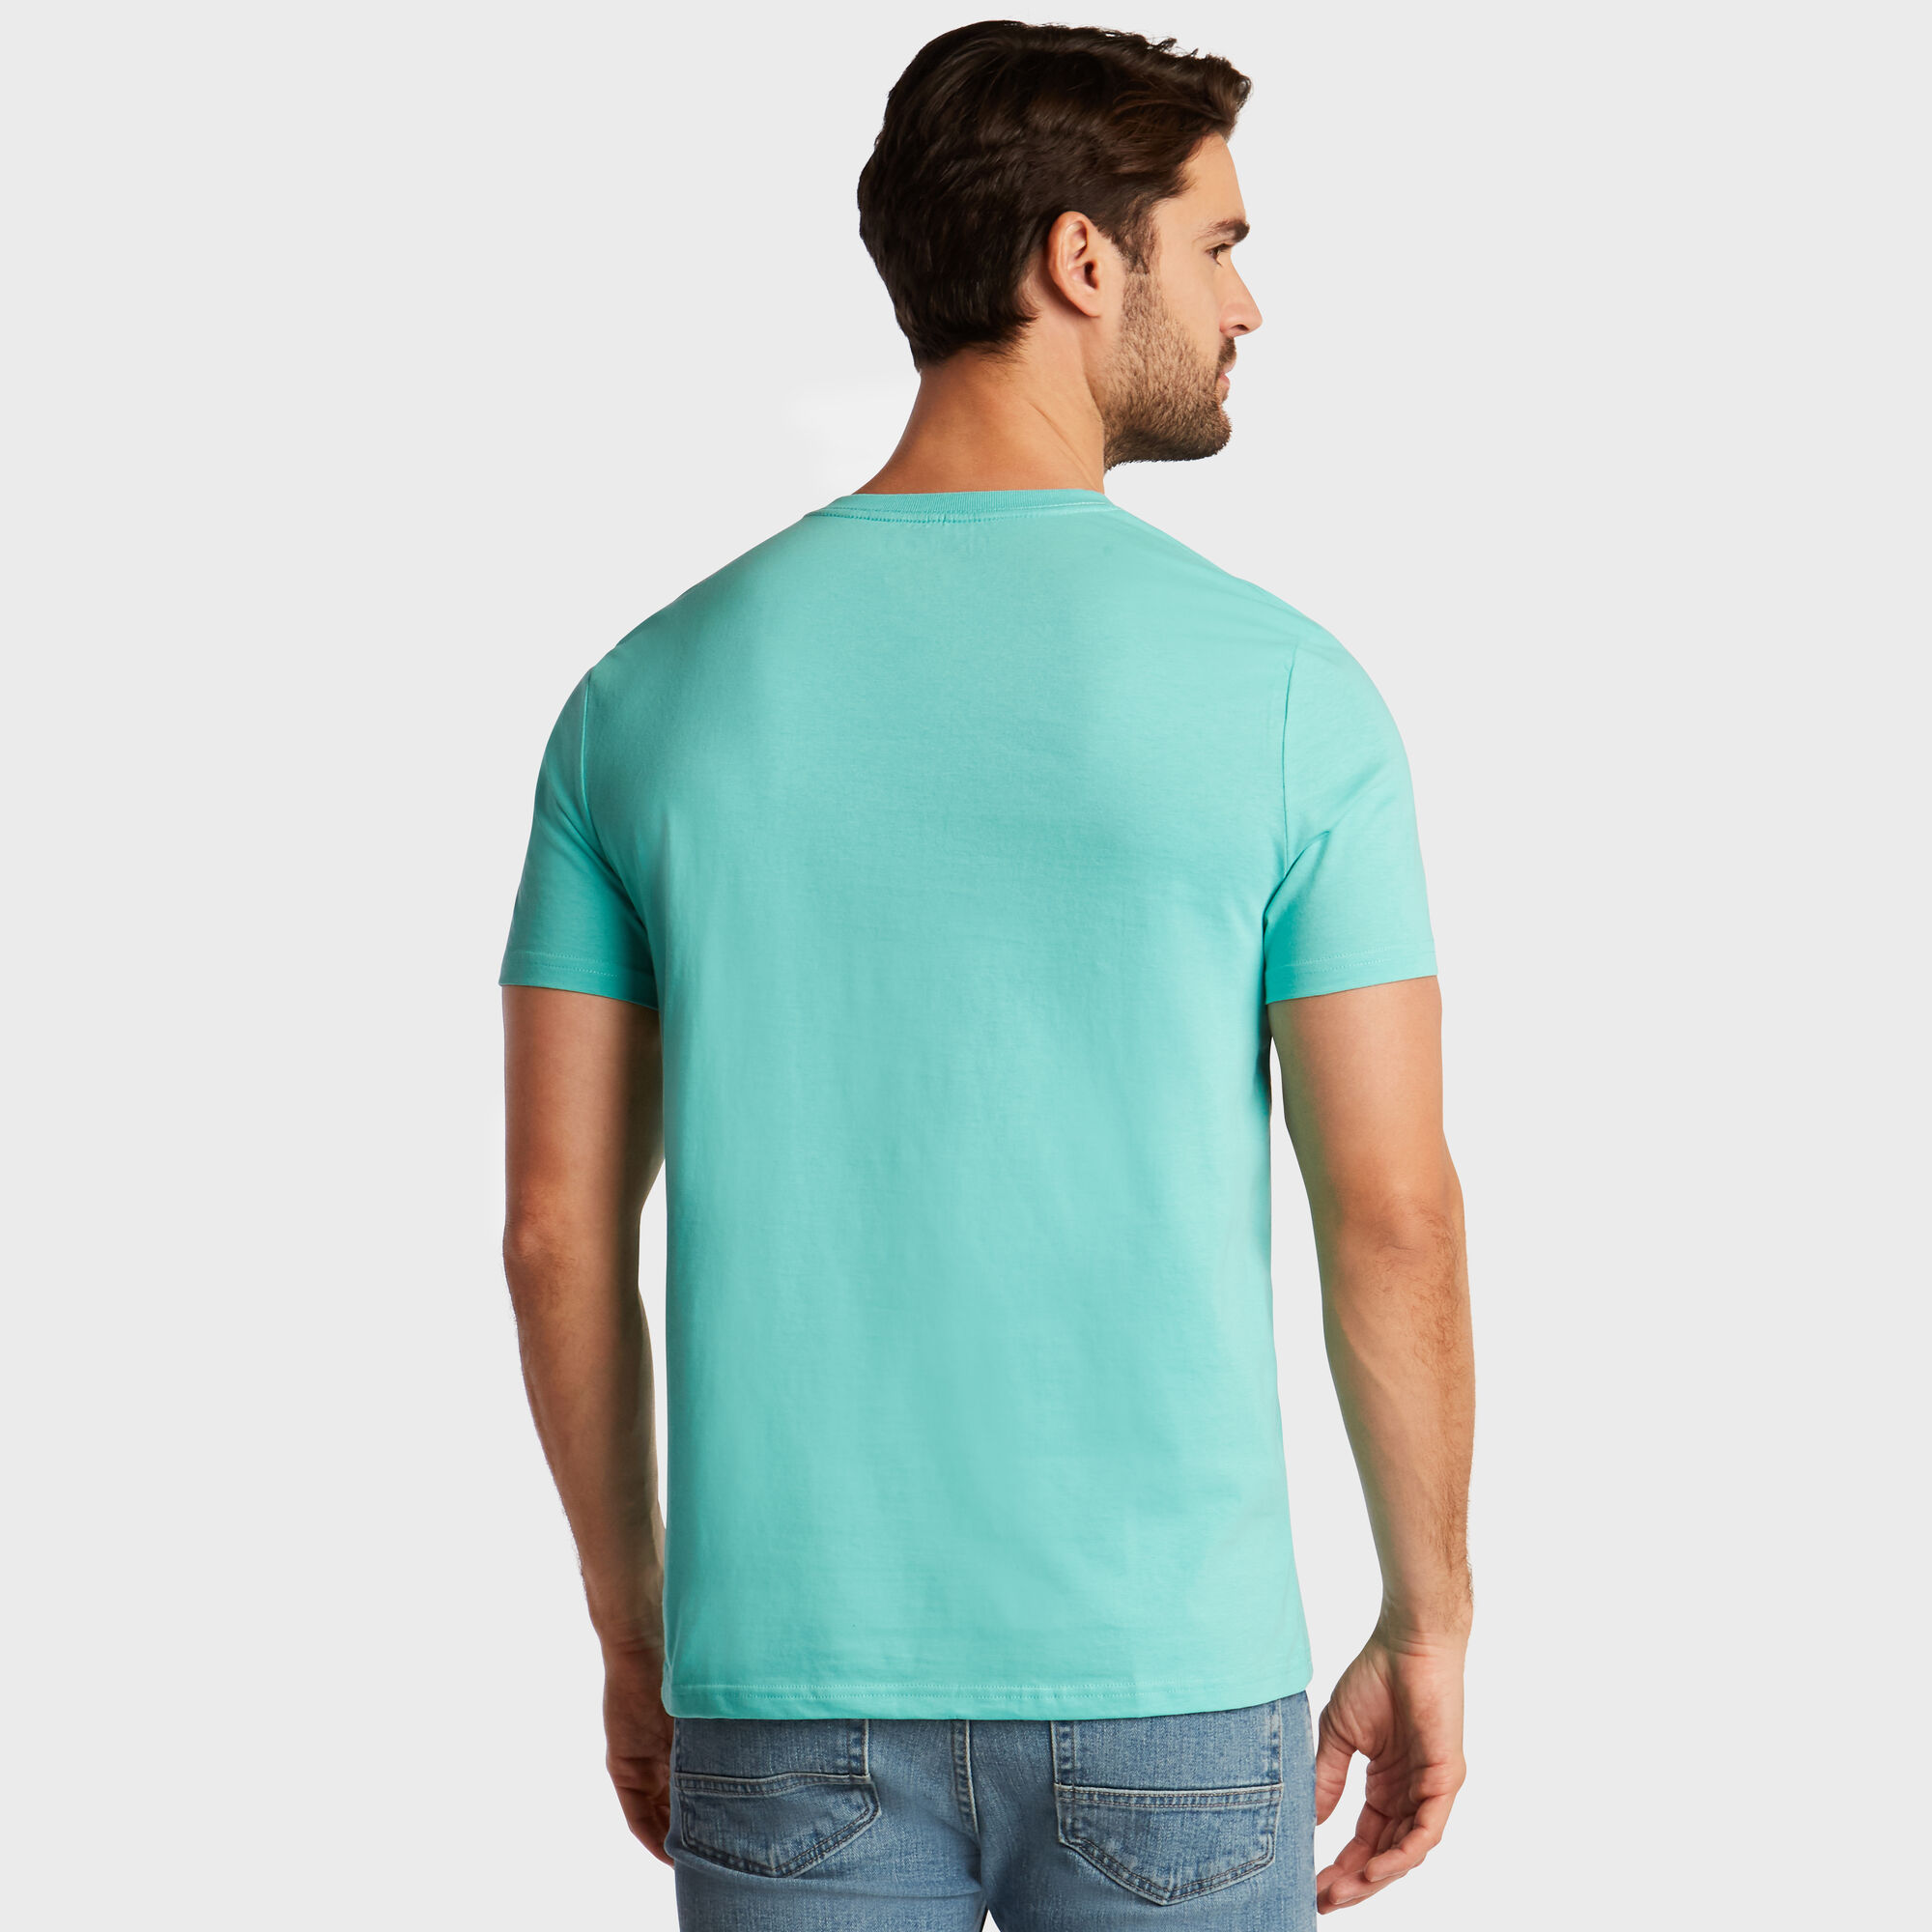 Nautica-Mens-V-Neck-Short-Sleeve-T-Shirt thumbnail 48